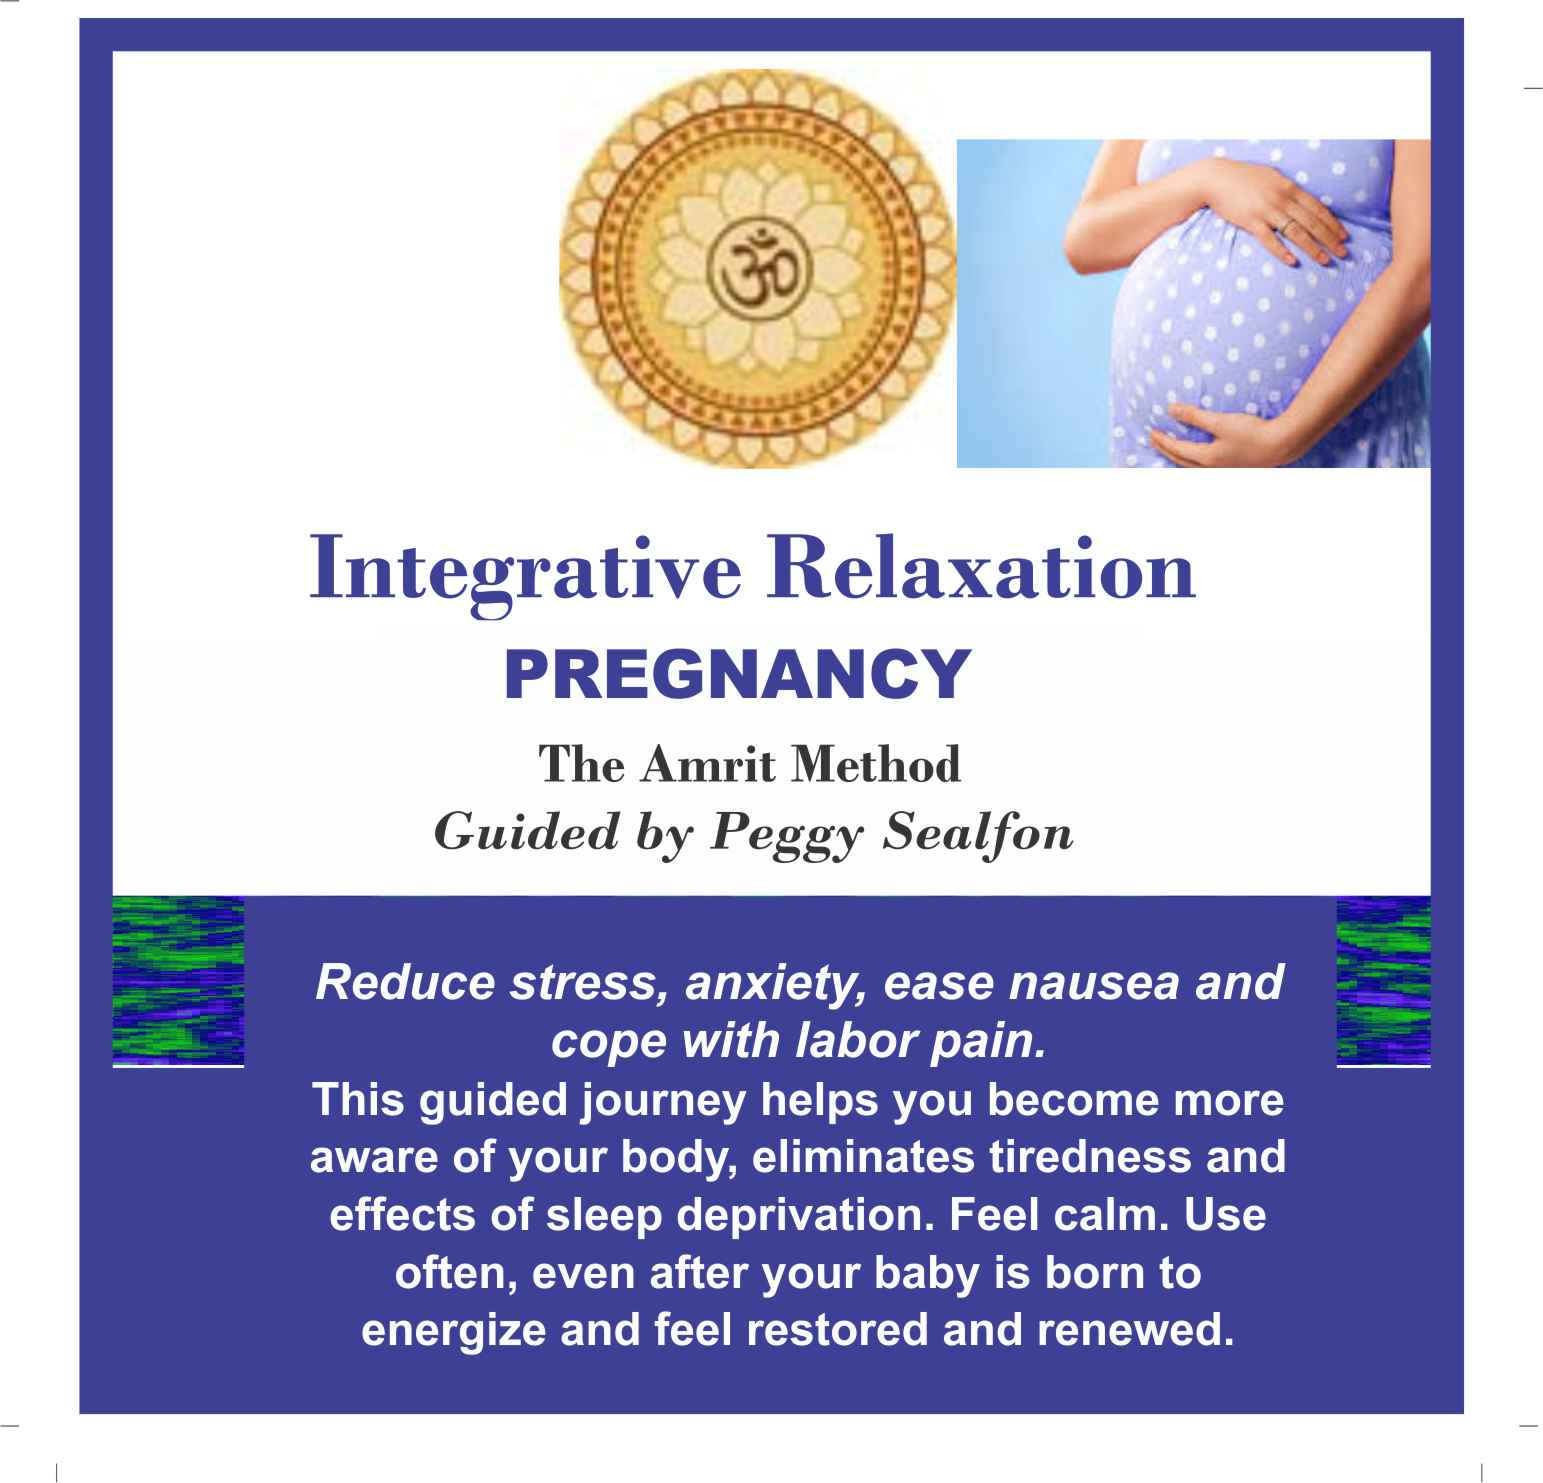 relaxation integrative